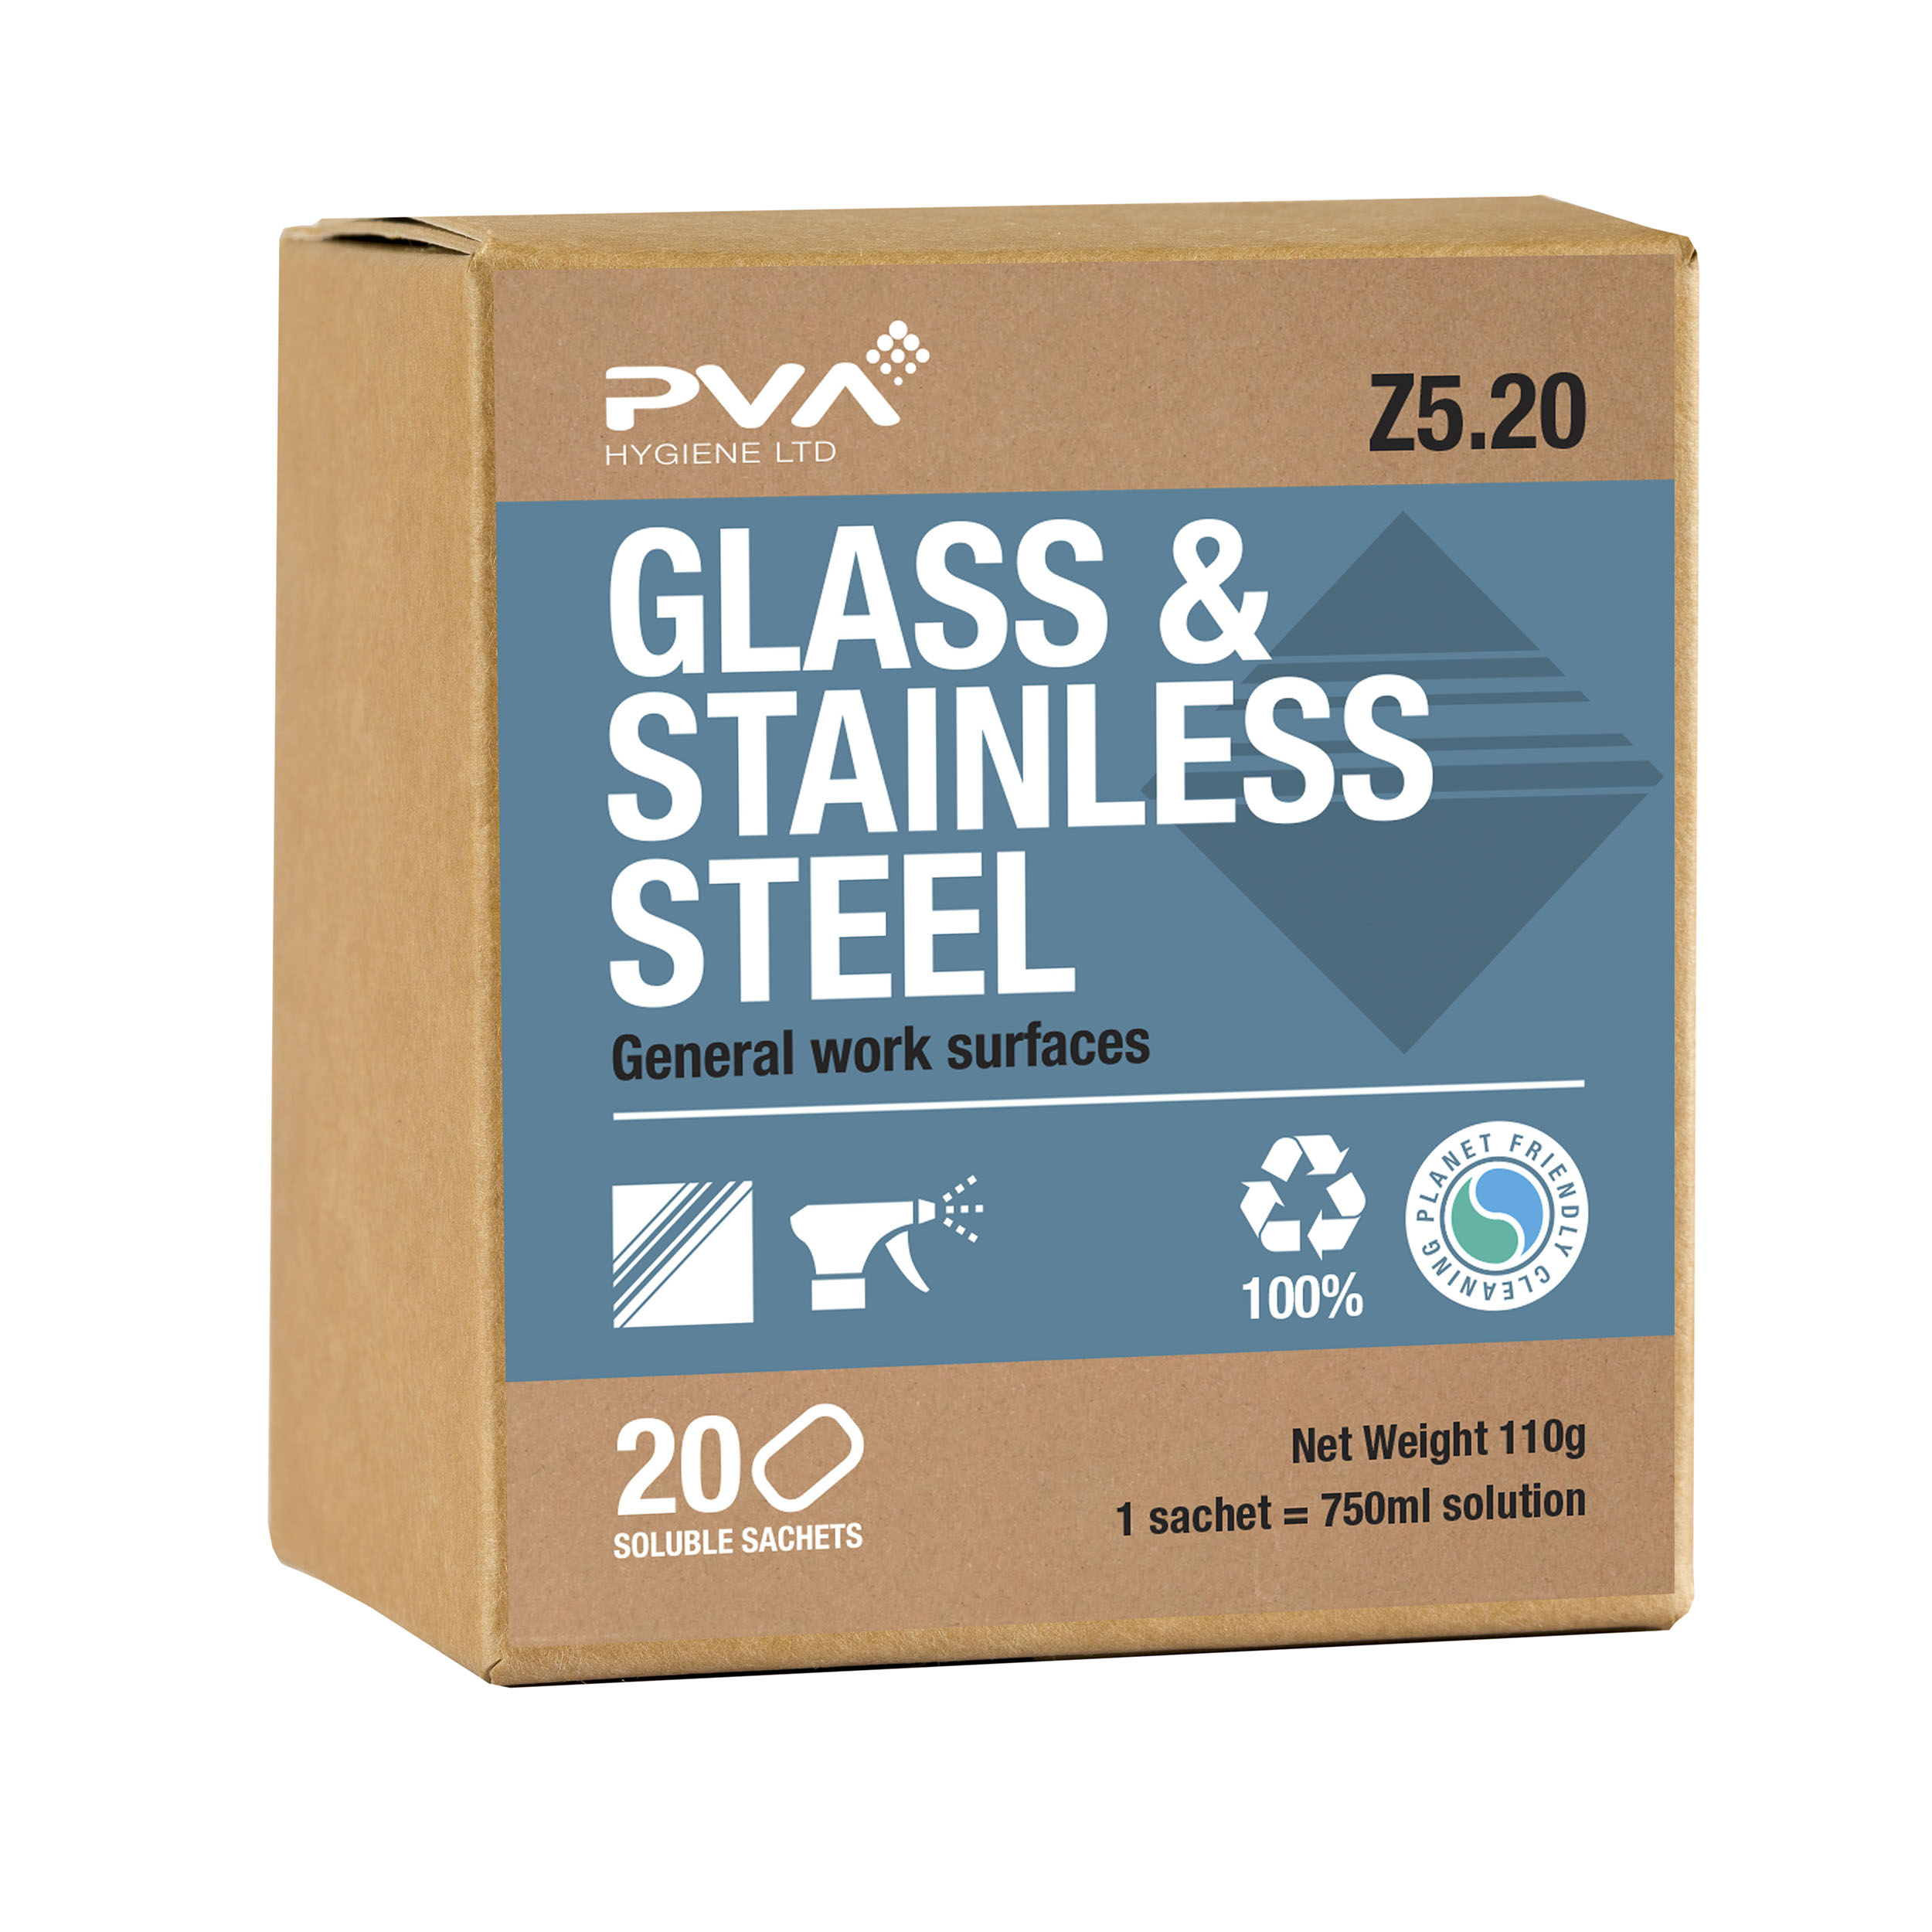 PVA Glass & Stainless Steel Cleaner Sachets Citrus Ref 4018018 Pack 20